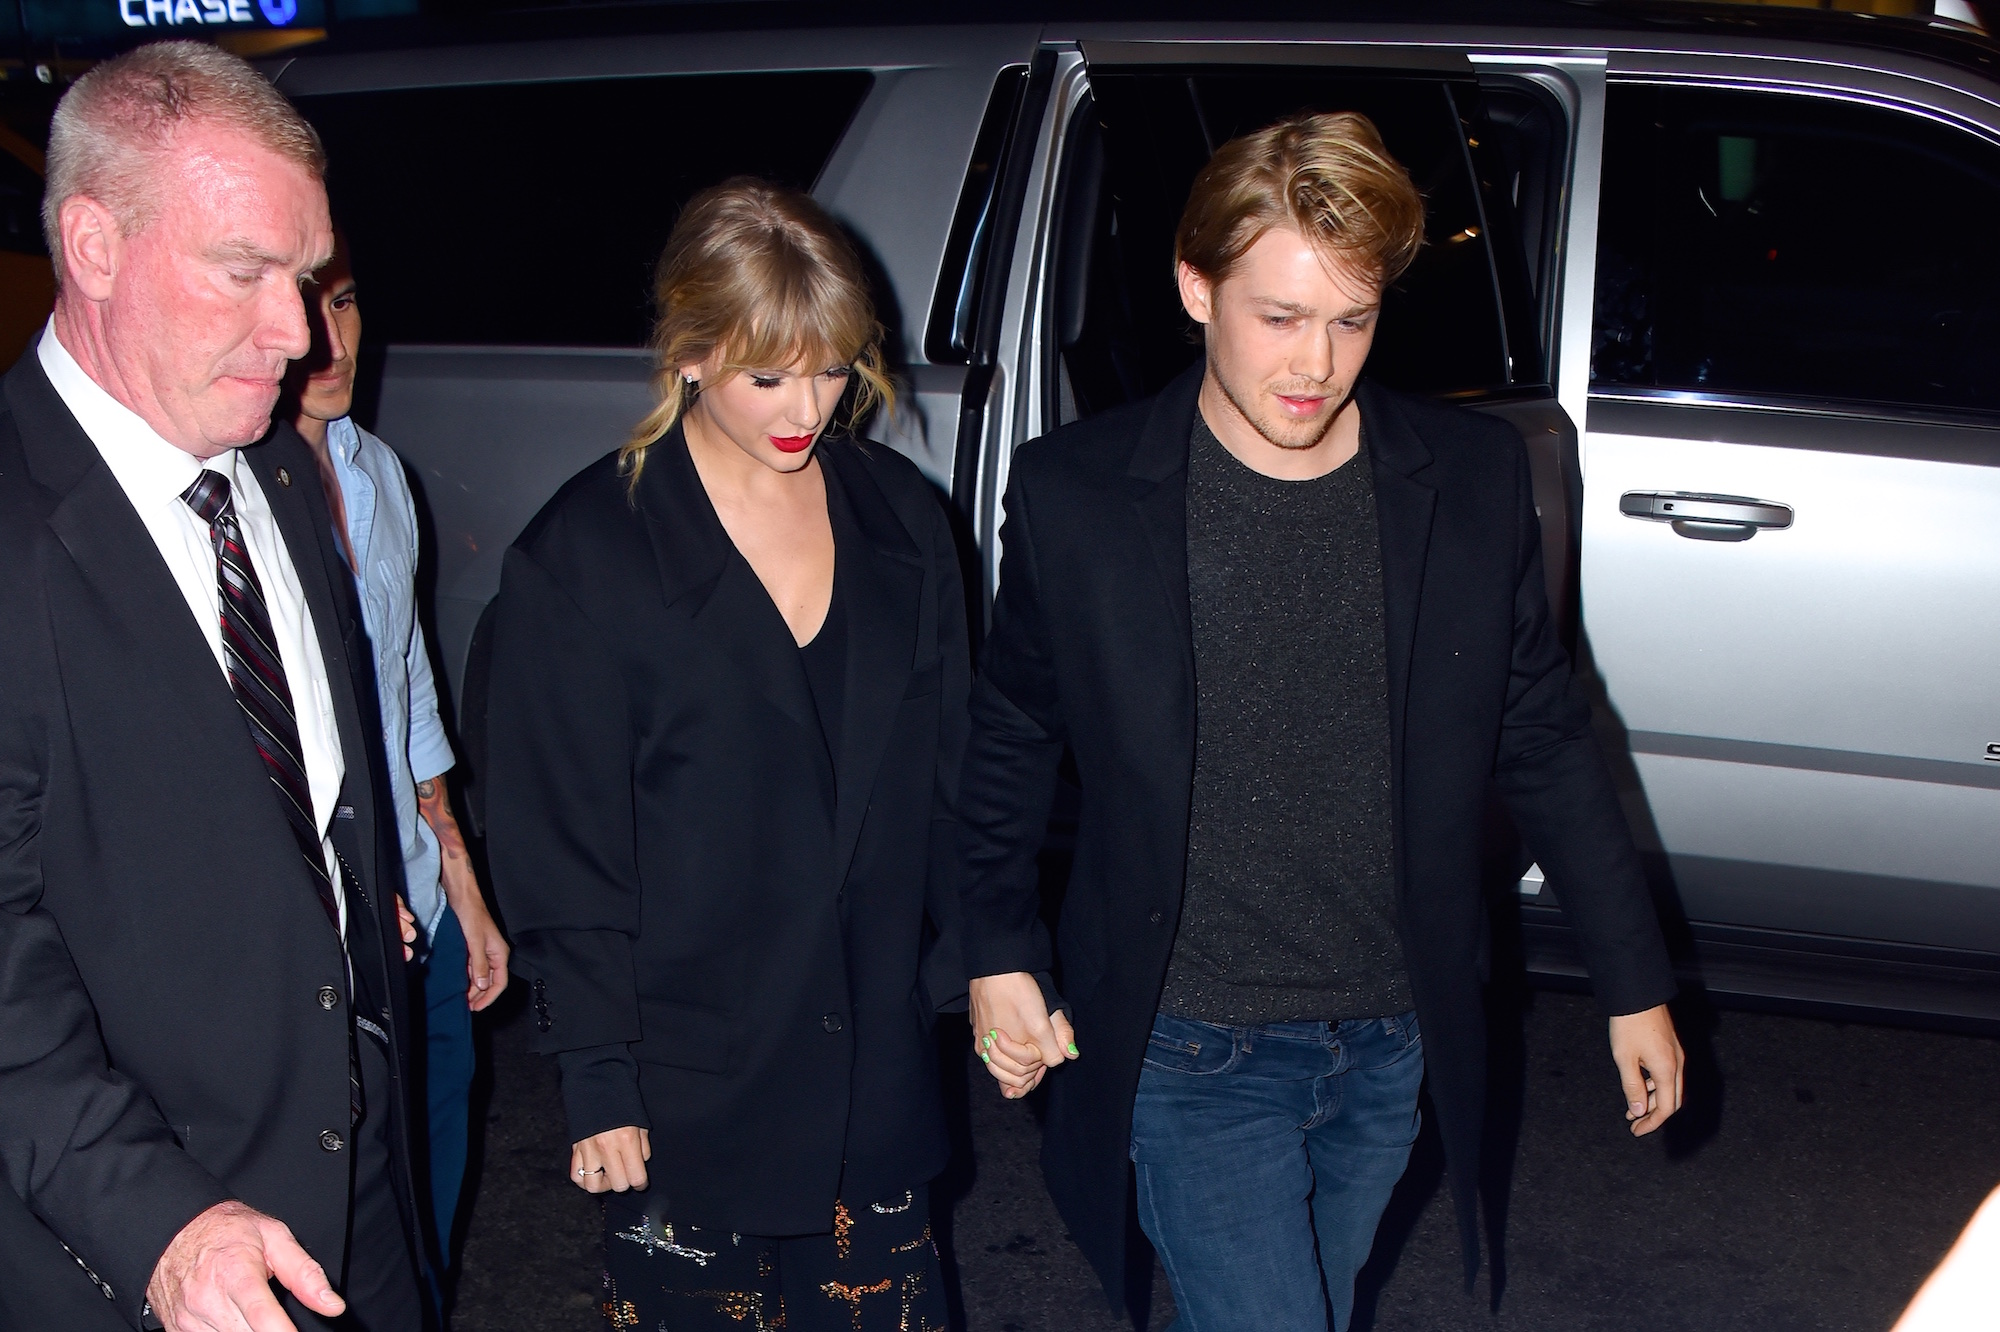 Times Taylor Swift May Have Referenced Joe Alwyn on 'Folklore'